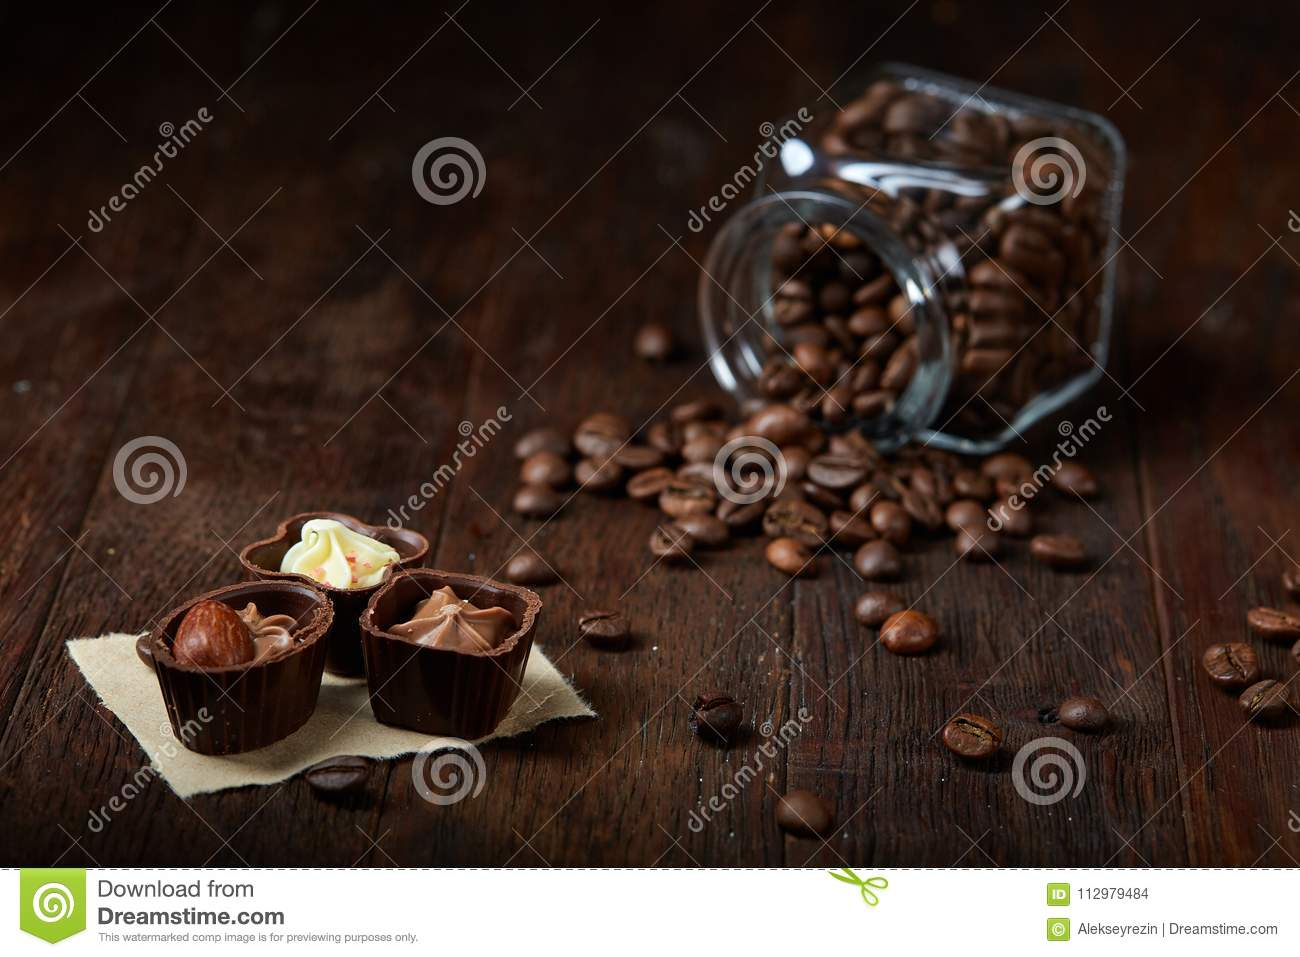 Side view of overturned glass jar with coffee beans and chocolate candies on wooden background, selective focus